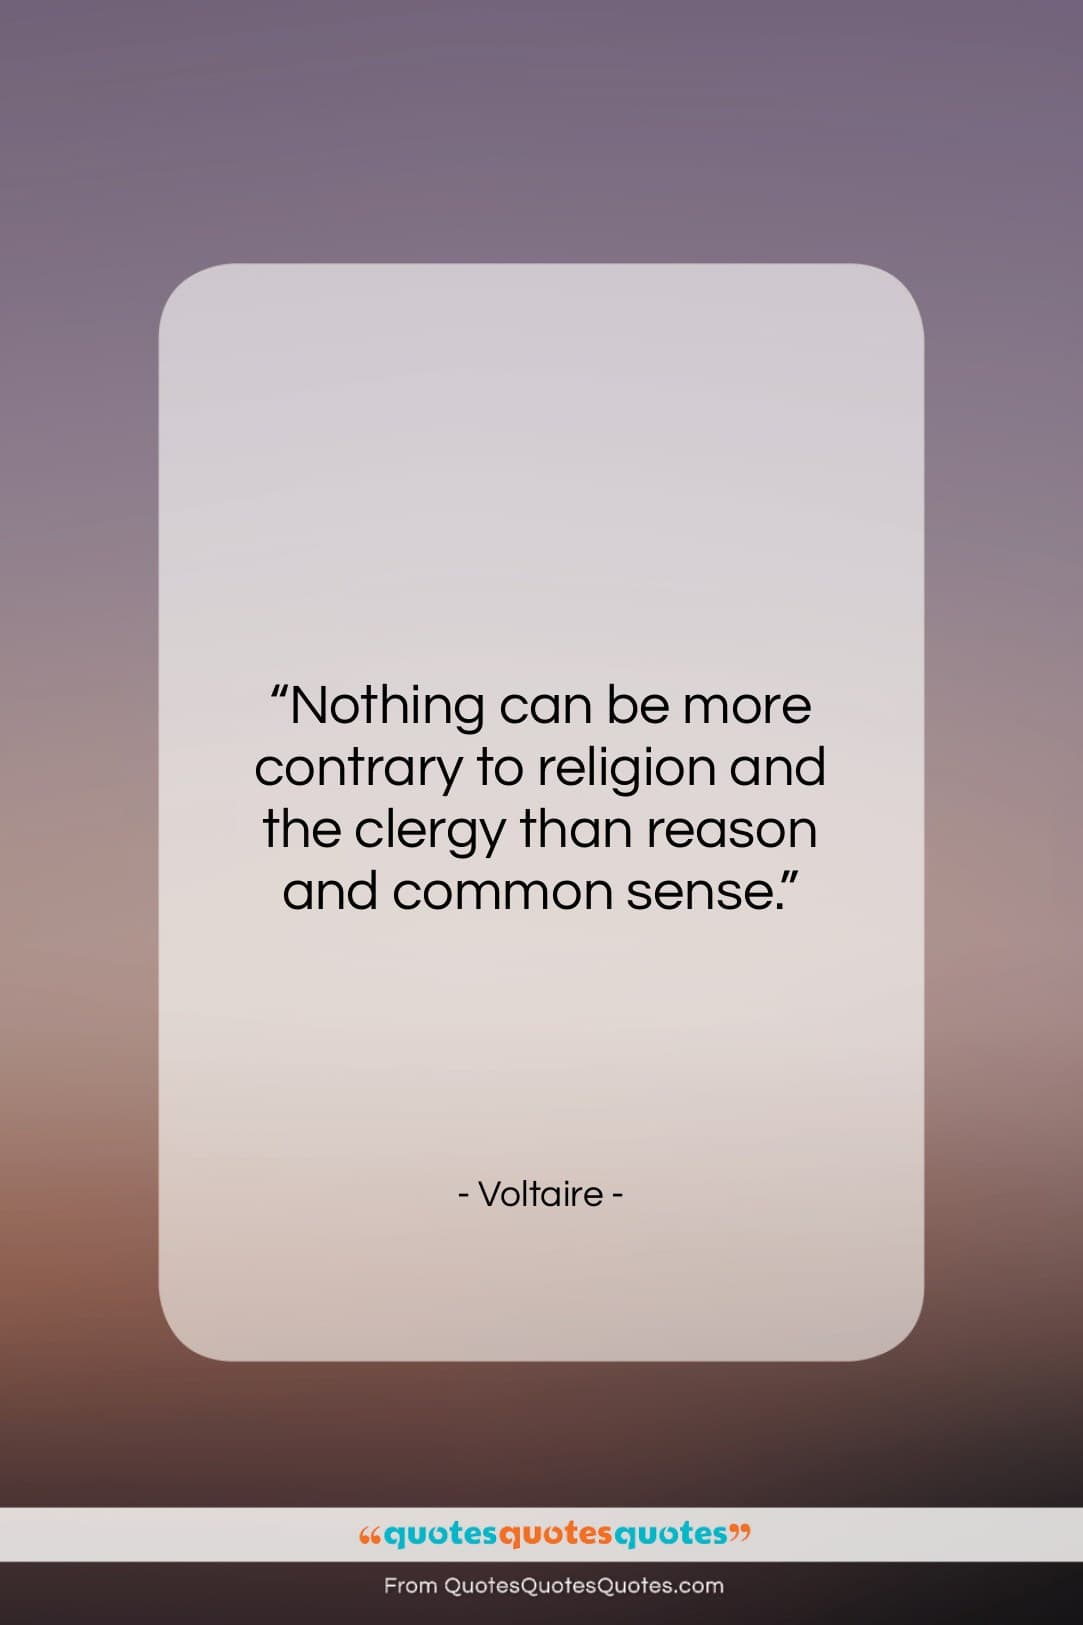 """Voltaire quote: """"Nothing can be more contrary to religion…""""- at QuotesQuotesQuotes.com"""